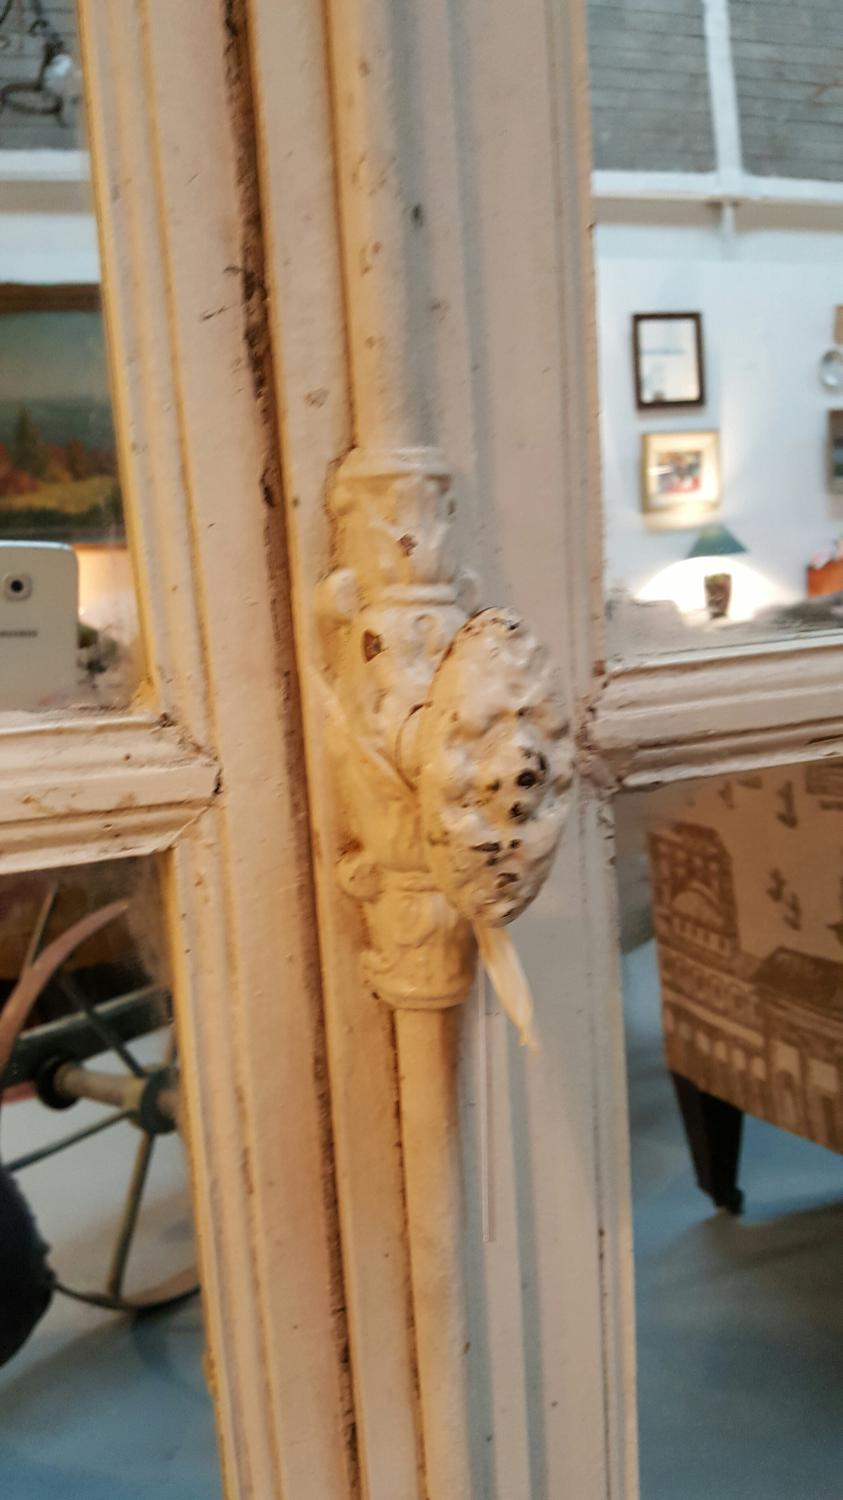 Pair of salvaged French windows with mirrors